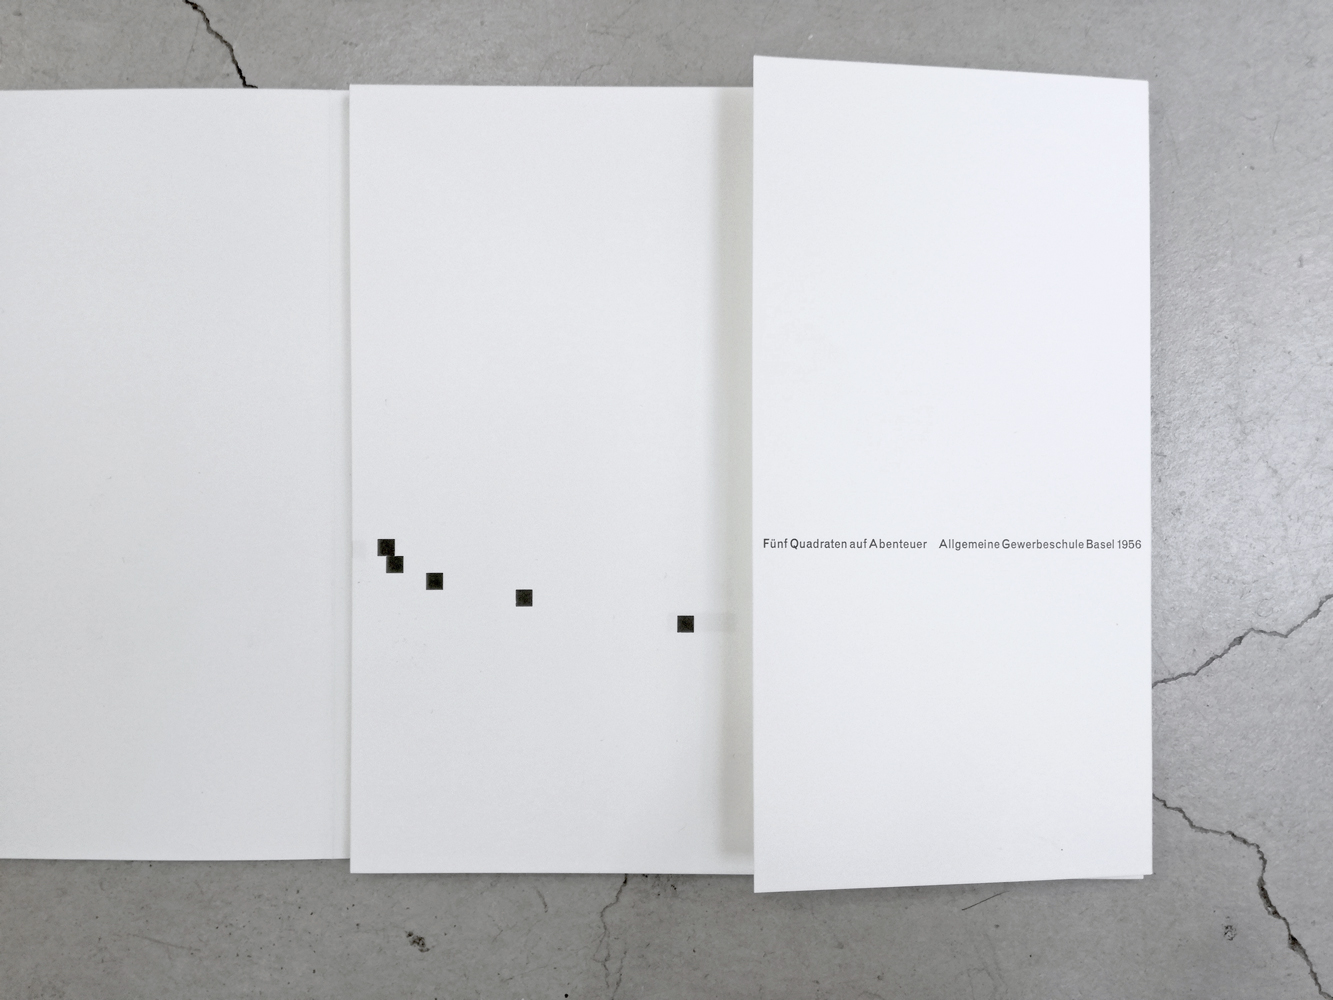 Kurt Hauert Fünf Quadraten auf Abenteuer(Five Squares on an Adventure) reprinted by Helmut Schmid exhibited at print gallery Tokyo